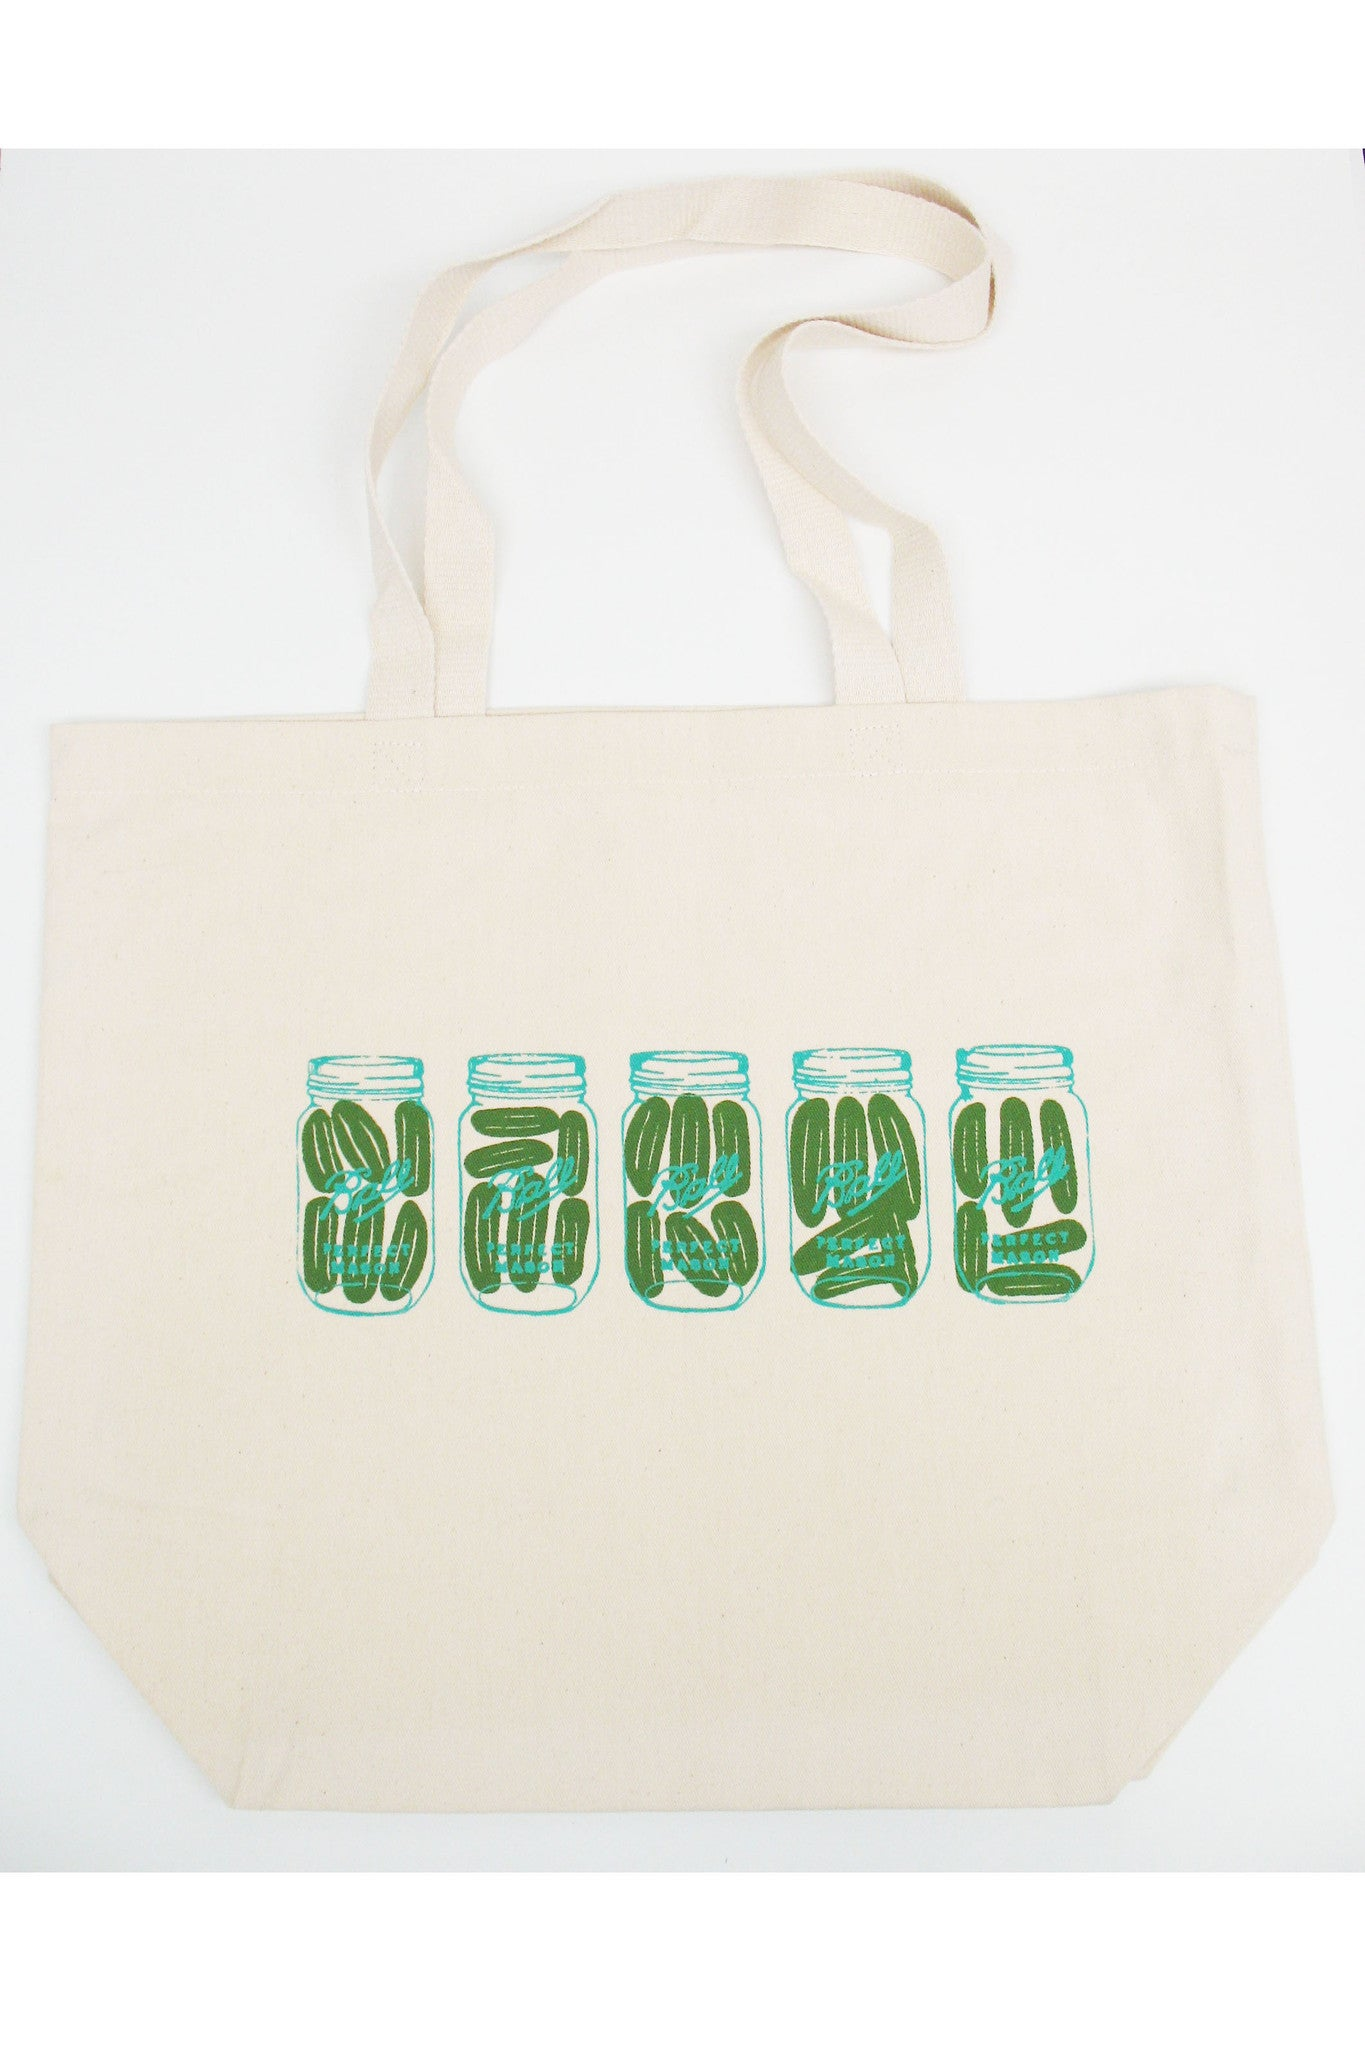 Pickle Mason Jars Tote bag Hand silkscreened in Ottawa Canada